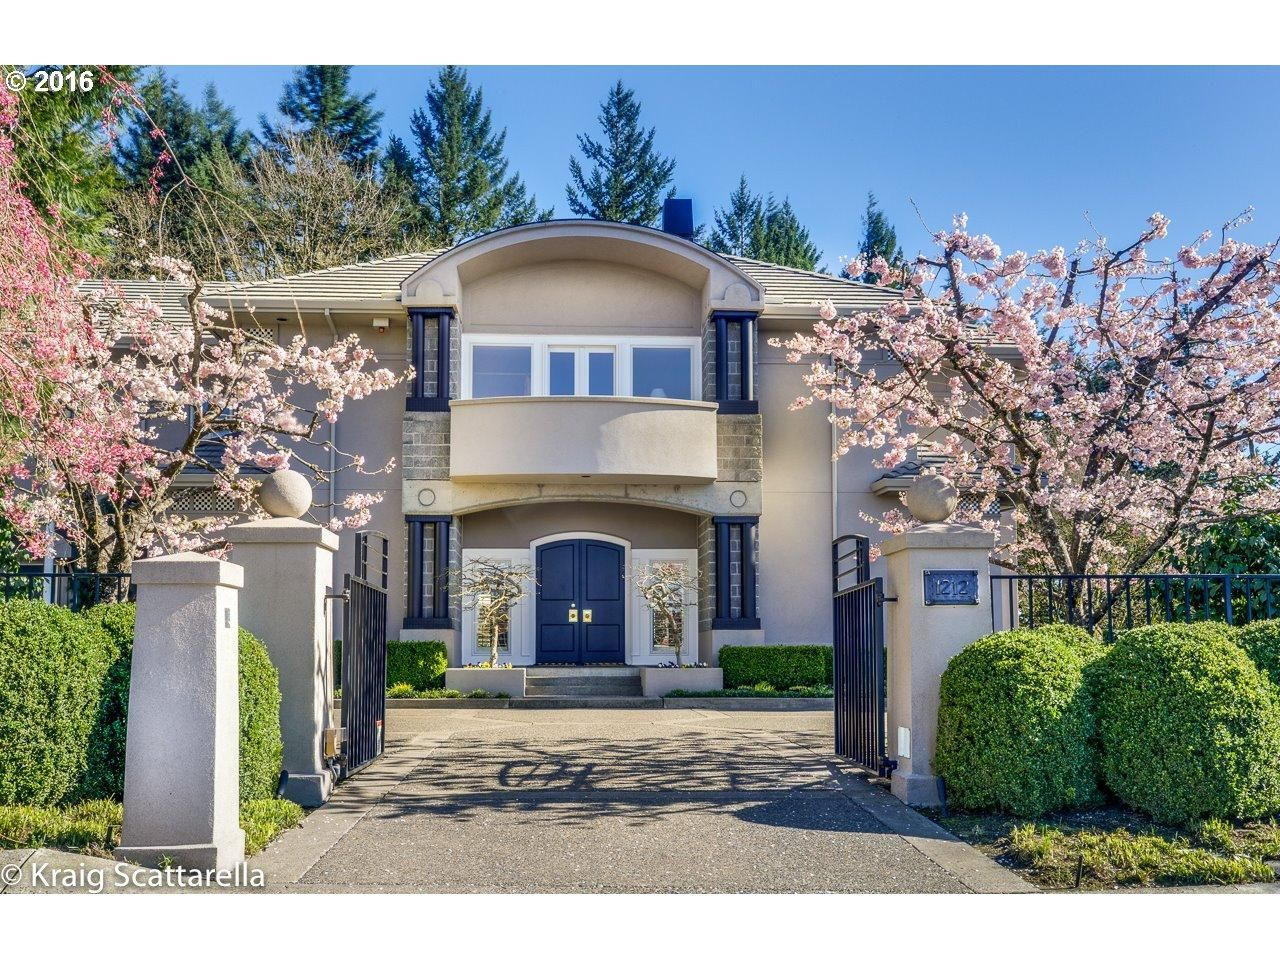 Check out this Single Family in PORTLAND, OR - view photos, property details and…